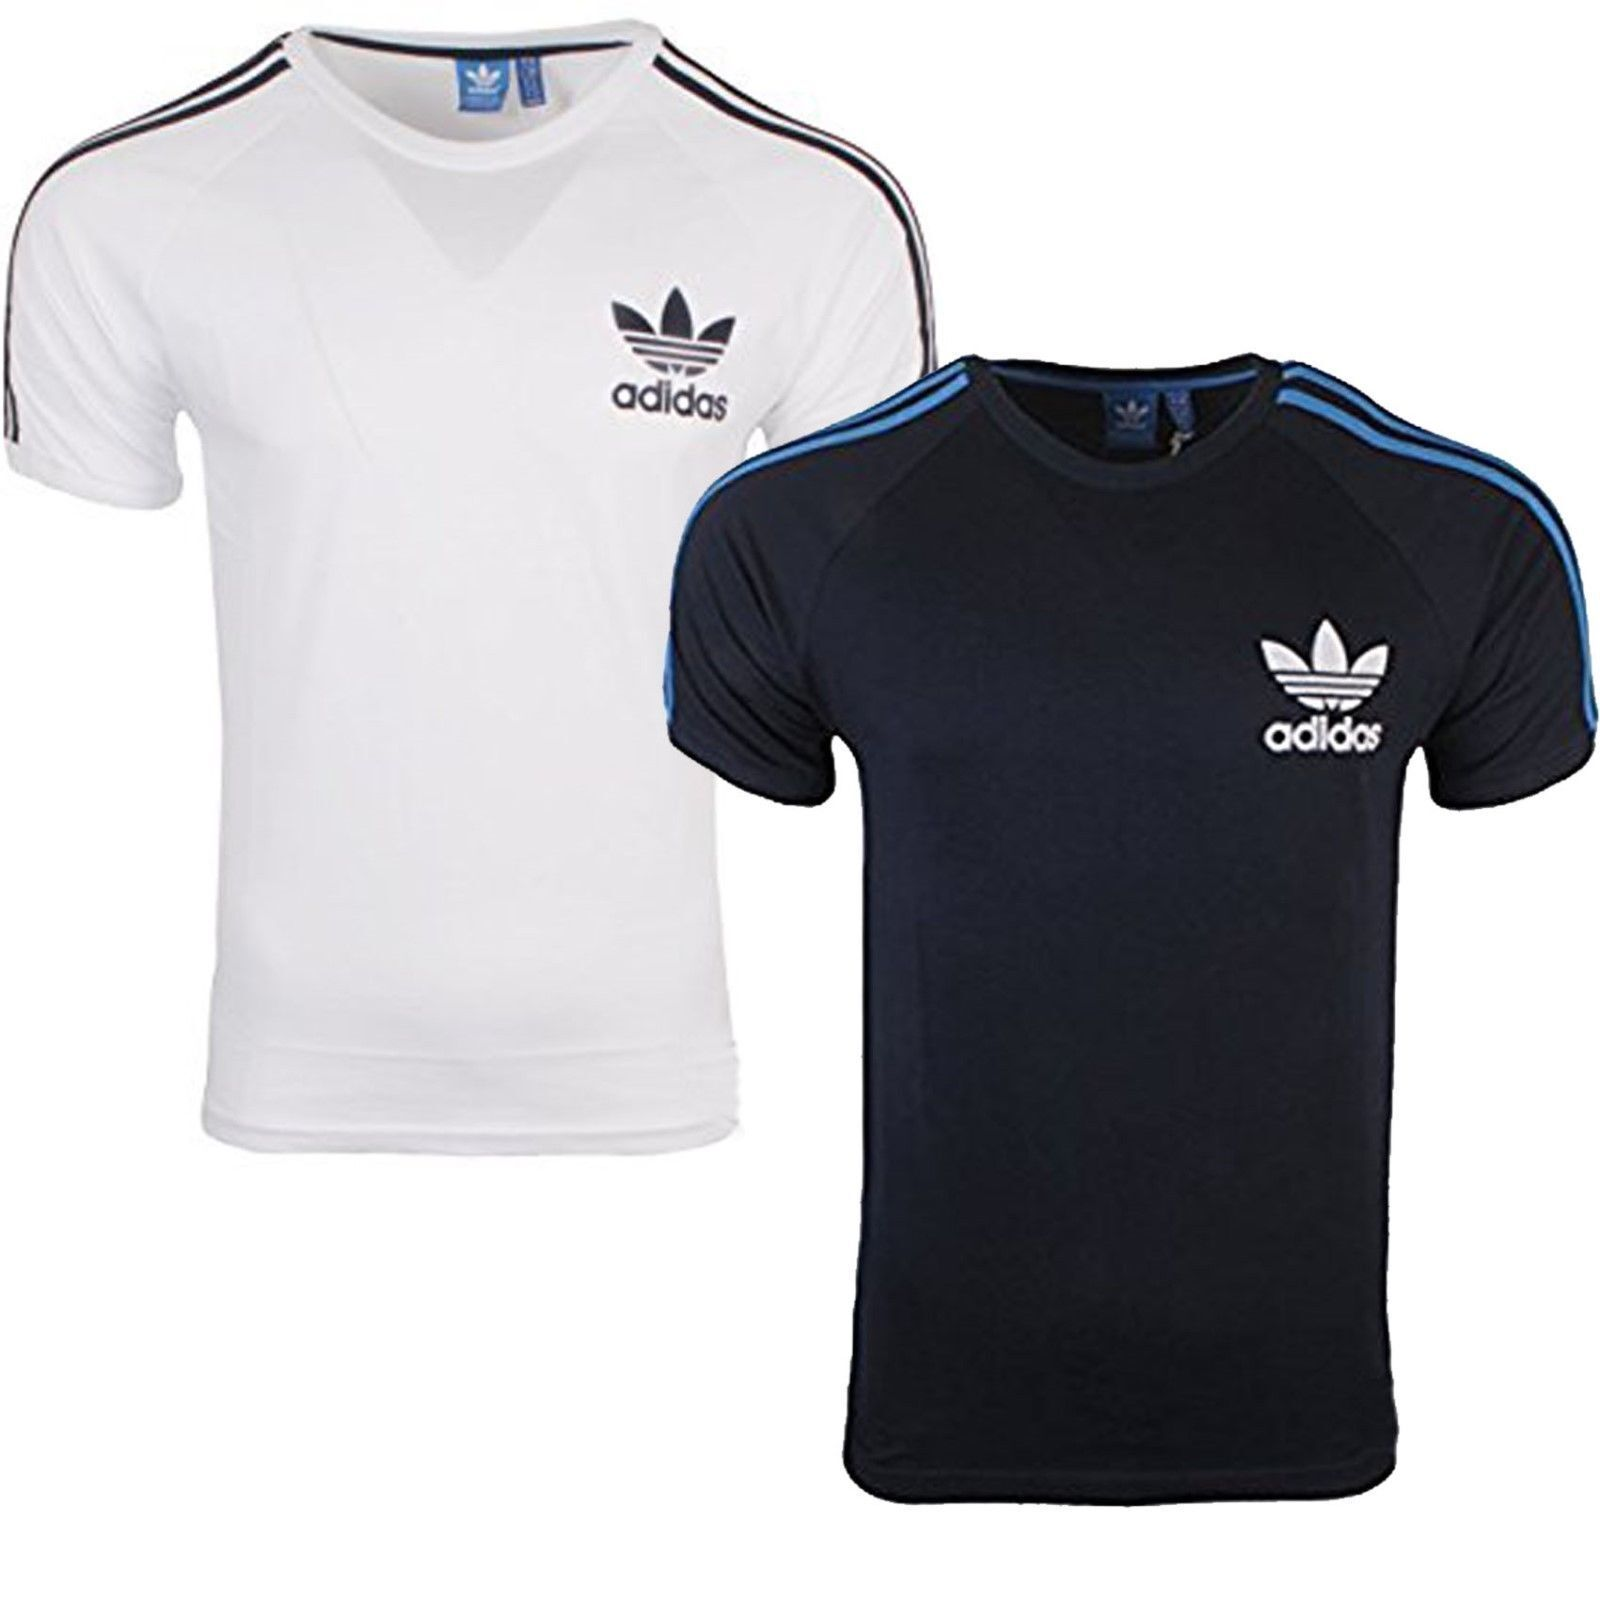 Adidas Originals Mens California Rövid ujjú póló Crew Neck Tee Gym Top Új